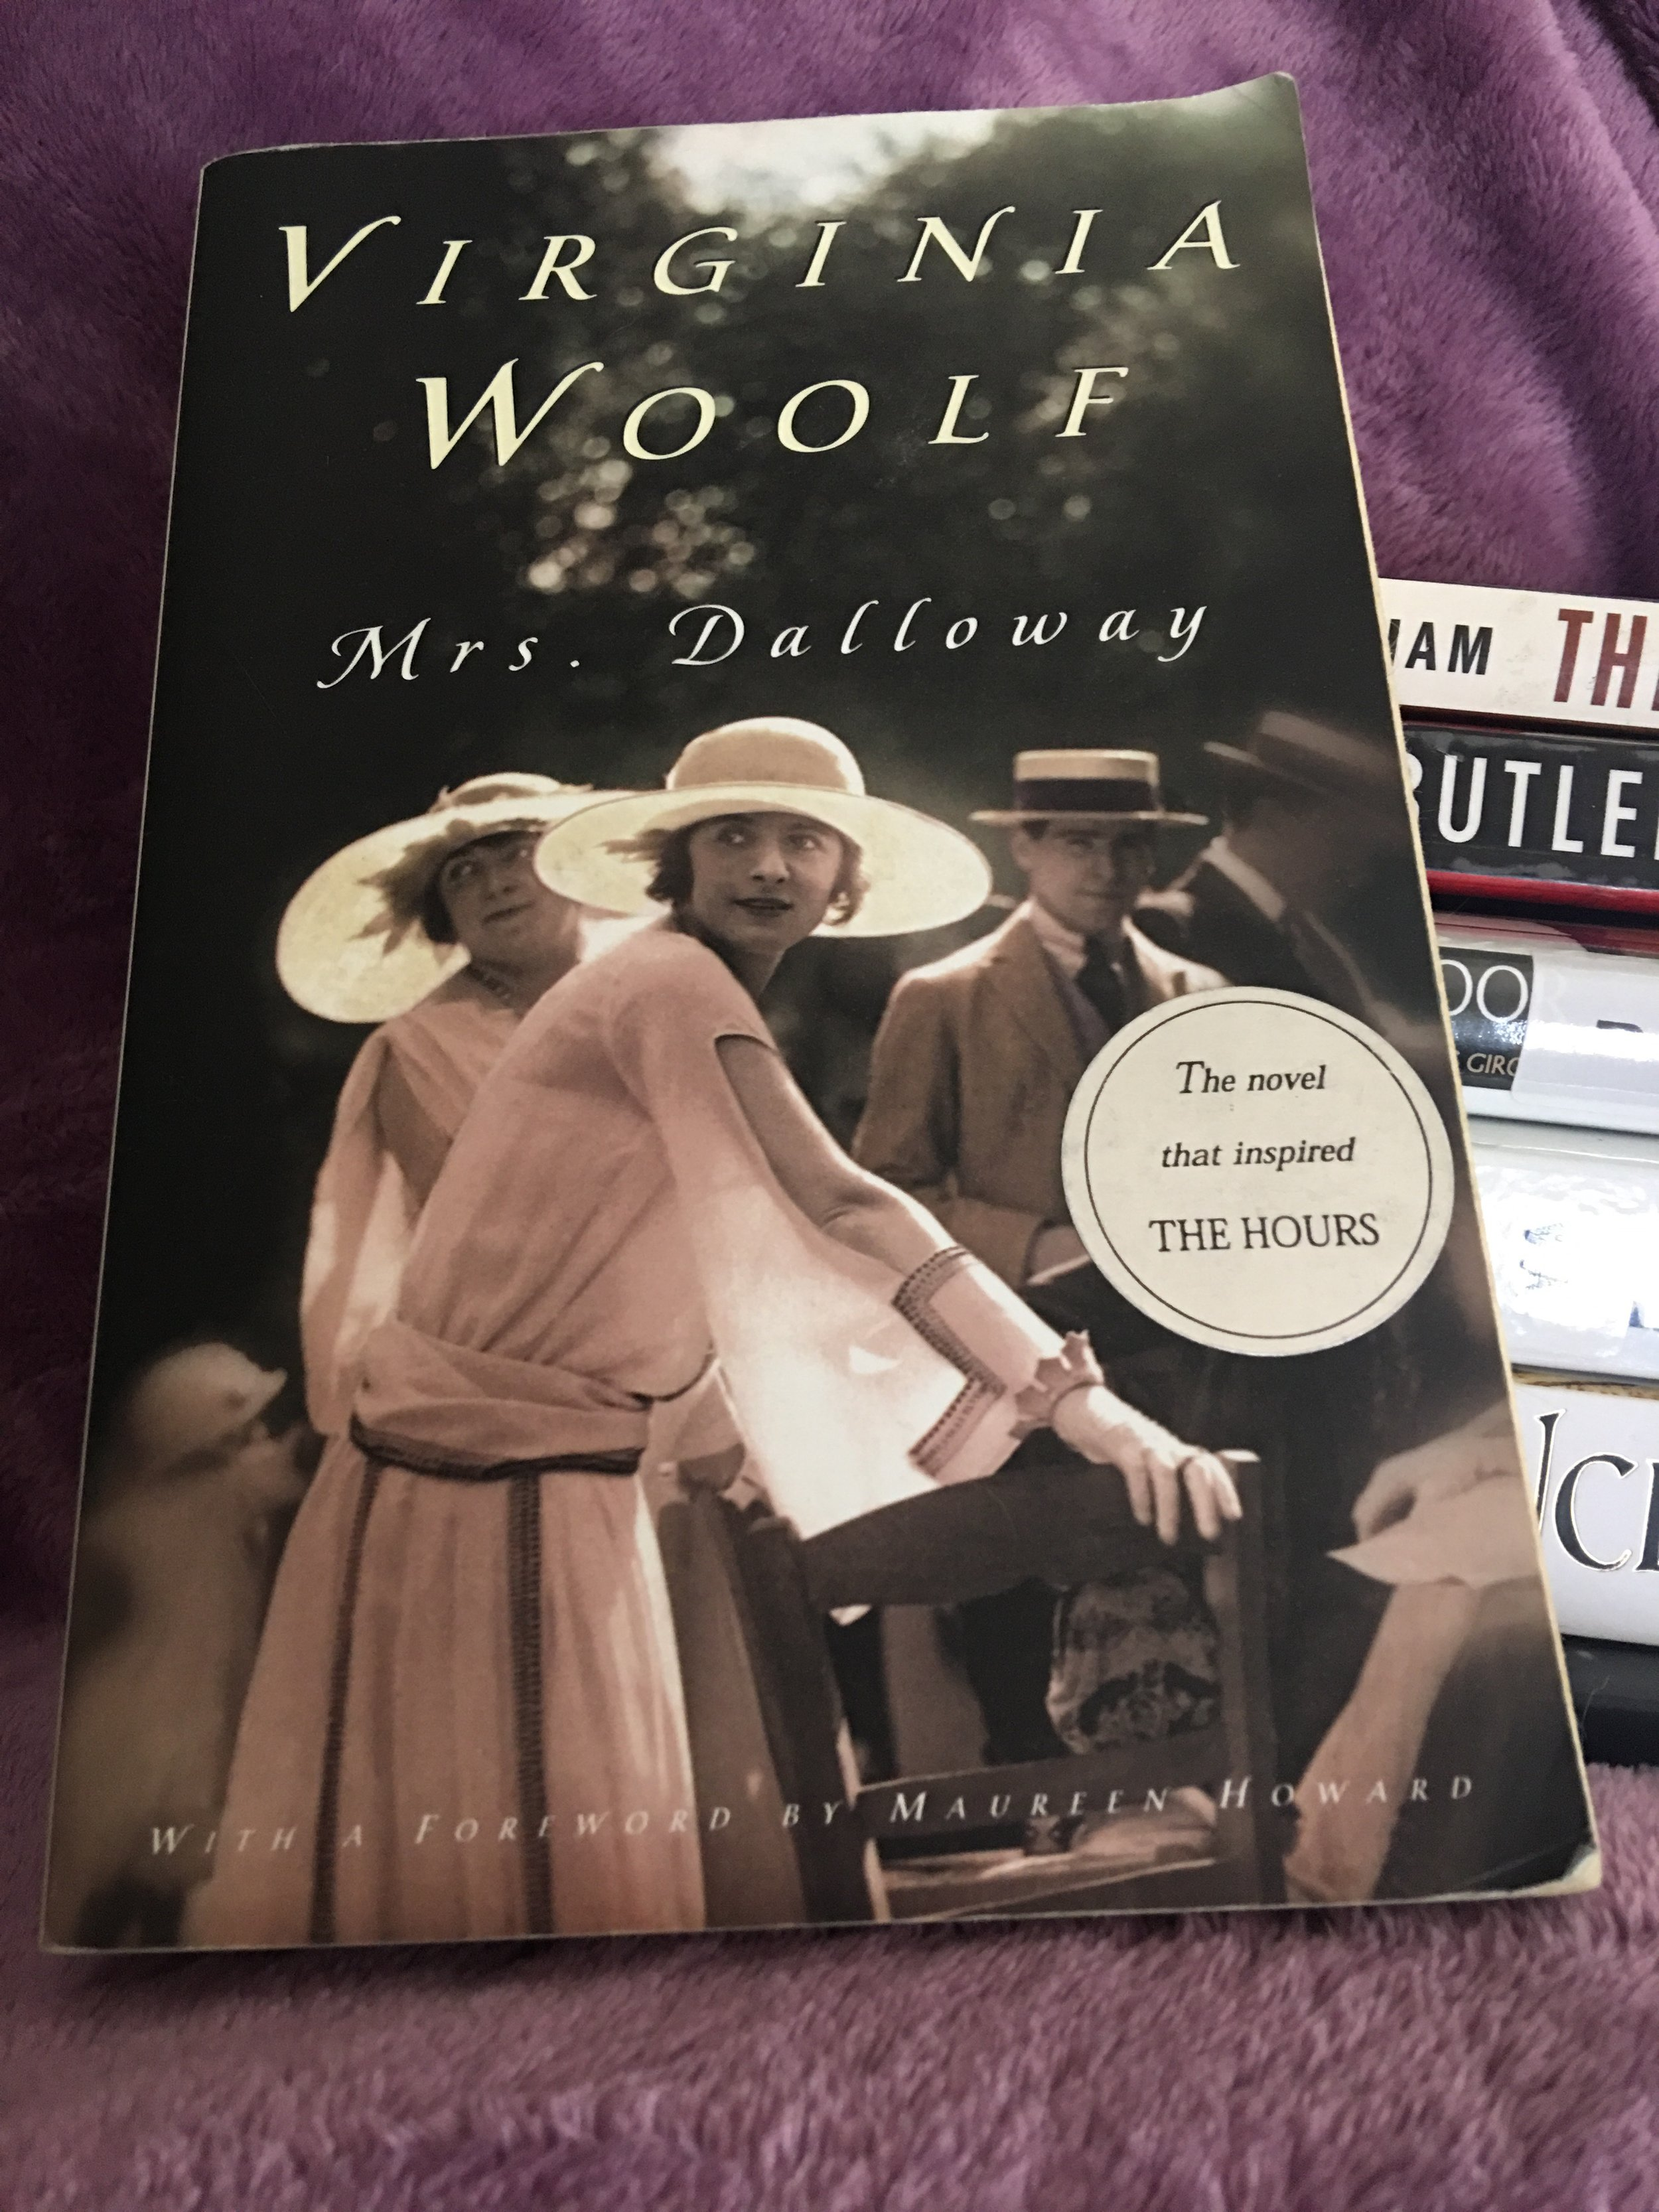 Mrs. Dalloway - By Virginia WoolfMy rating: 4 stars | Pages: 197What made me pick it up: It's a classic, I wanted to read The Hours but was told to read this first and it was a reading women challenge to read a book by Virginia Woolf; a shorter read for the 24in48 readathonFormat: Paperback | Source: Borrowed2018 challenge/s: Goodreads 2018 Reading Challenge; Reading Women Challenge 2018